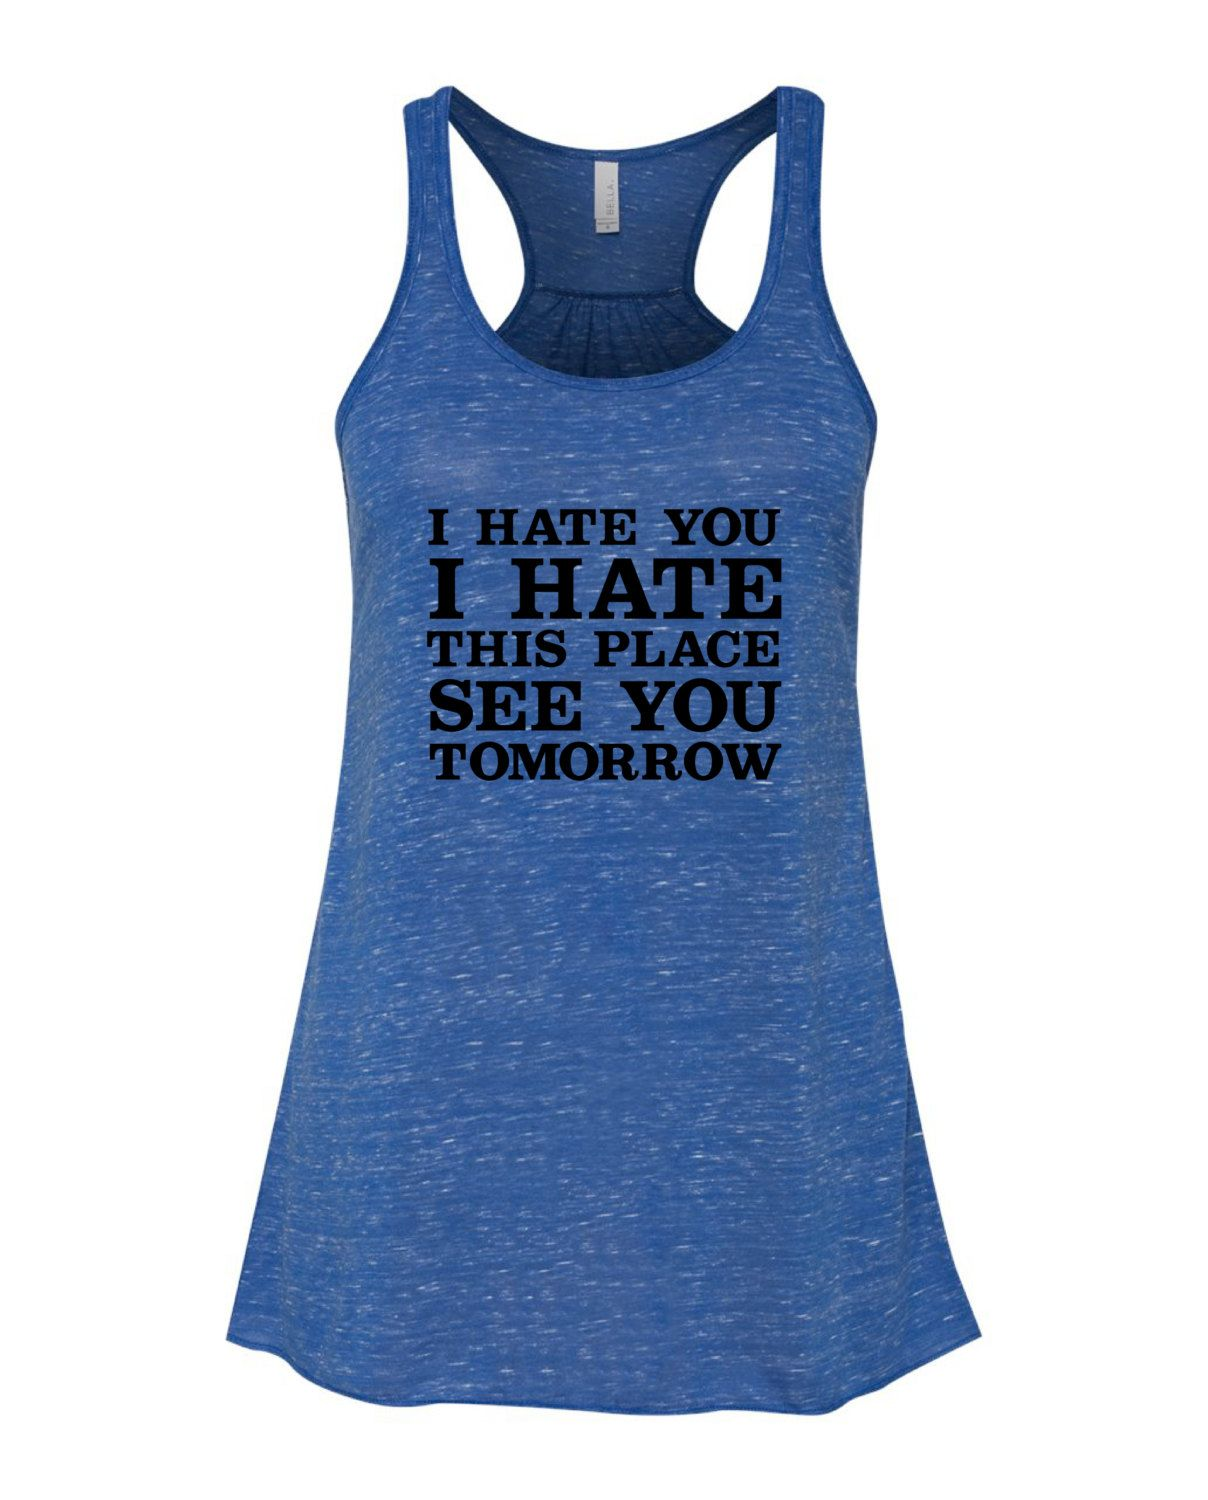 I Hate You, I Hate This Place, I'll See You Tomorrow , Flowy Racerback Tank, Womans Tank, Workout Tank, Lifting Tank, Running Tank, Gym Tank by GroovysTees on Etsy